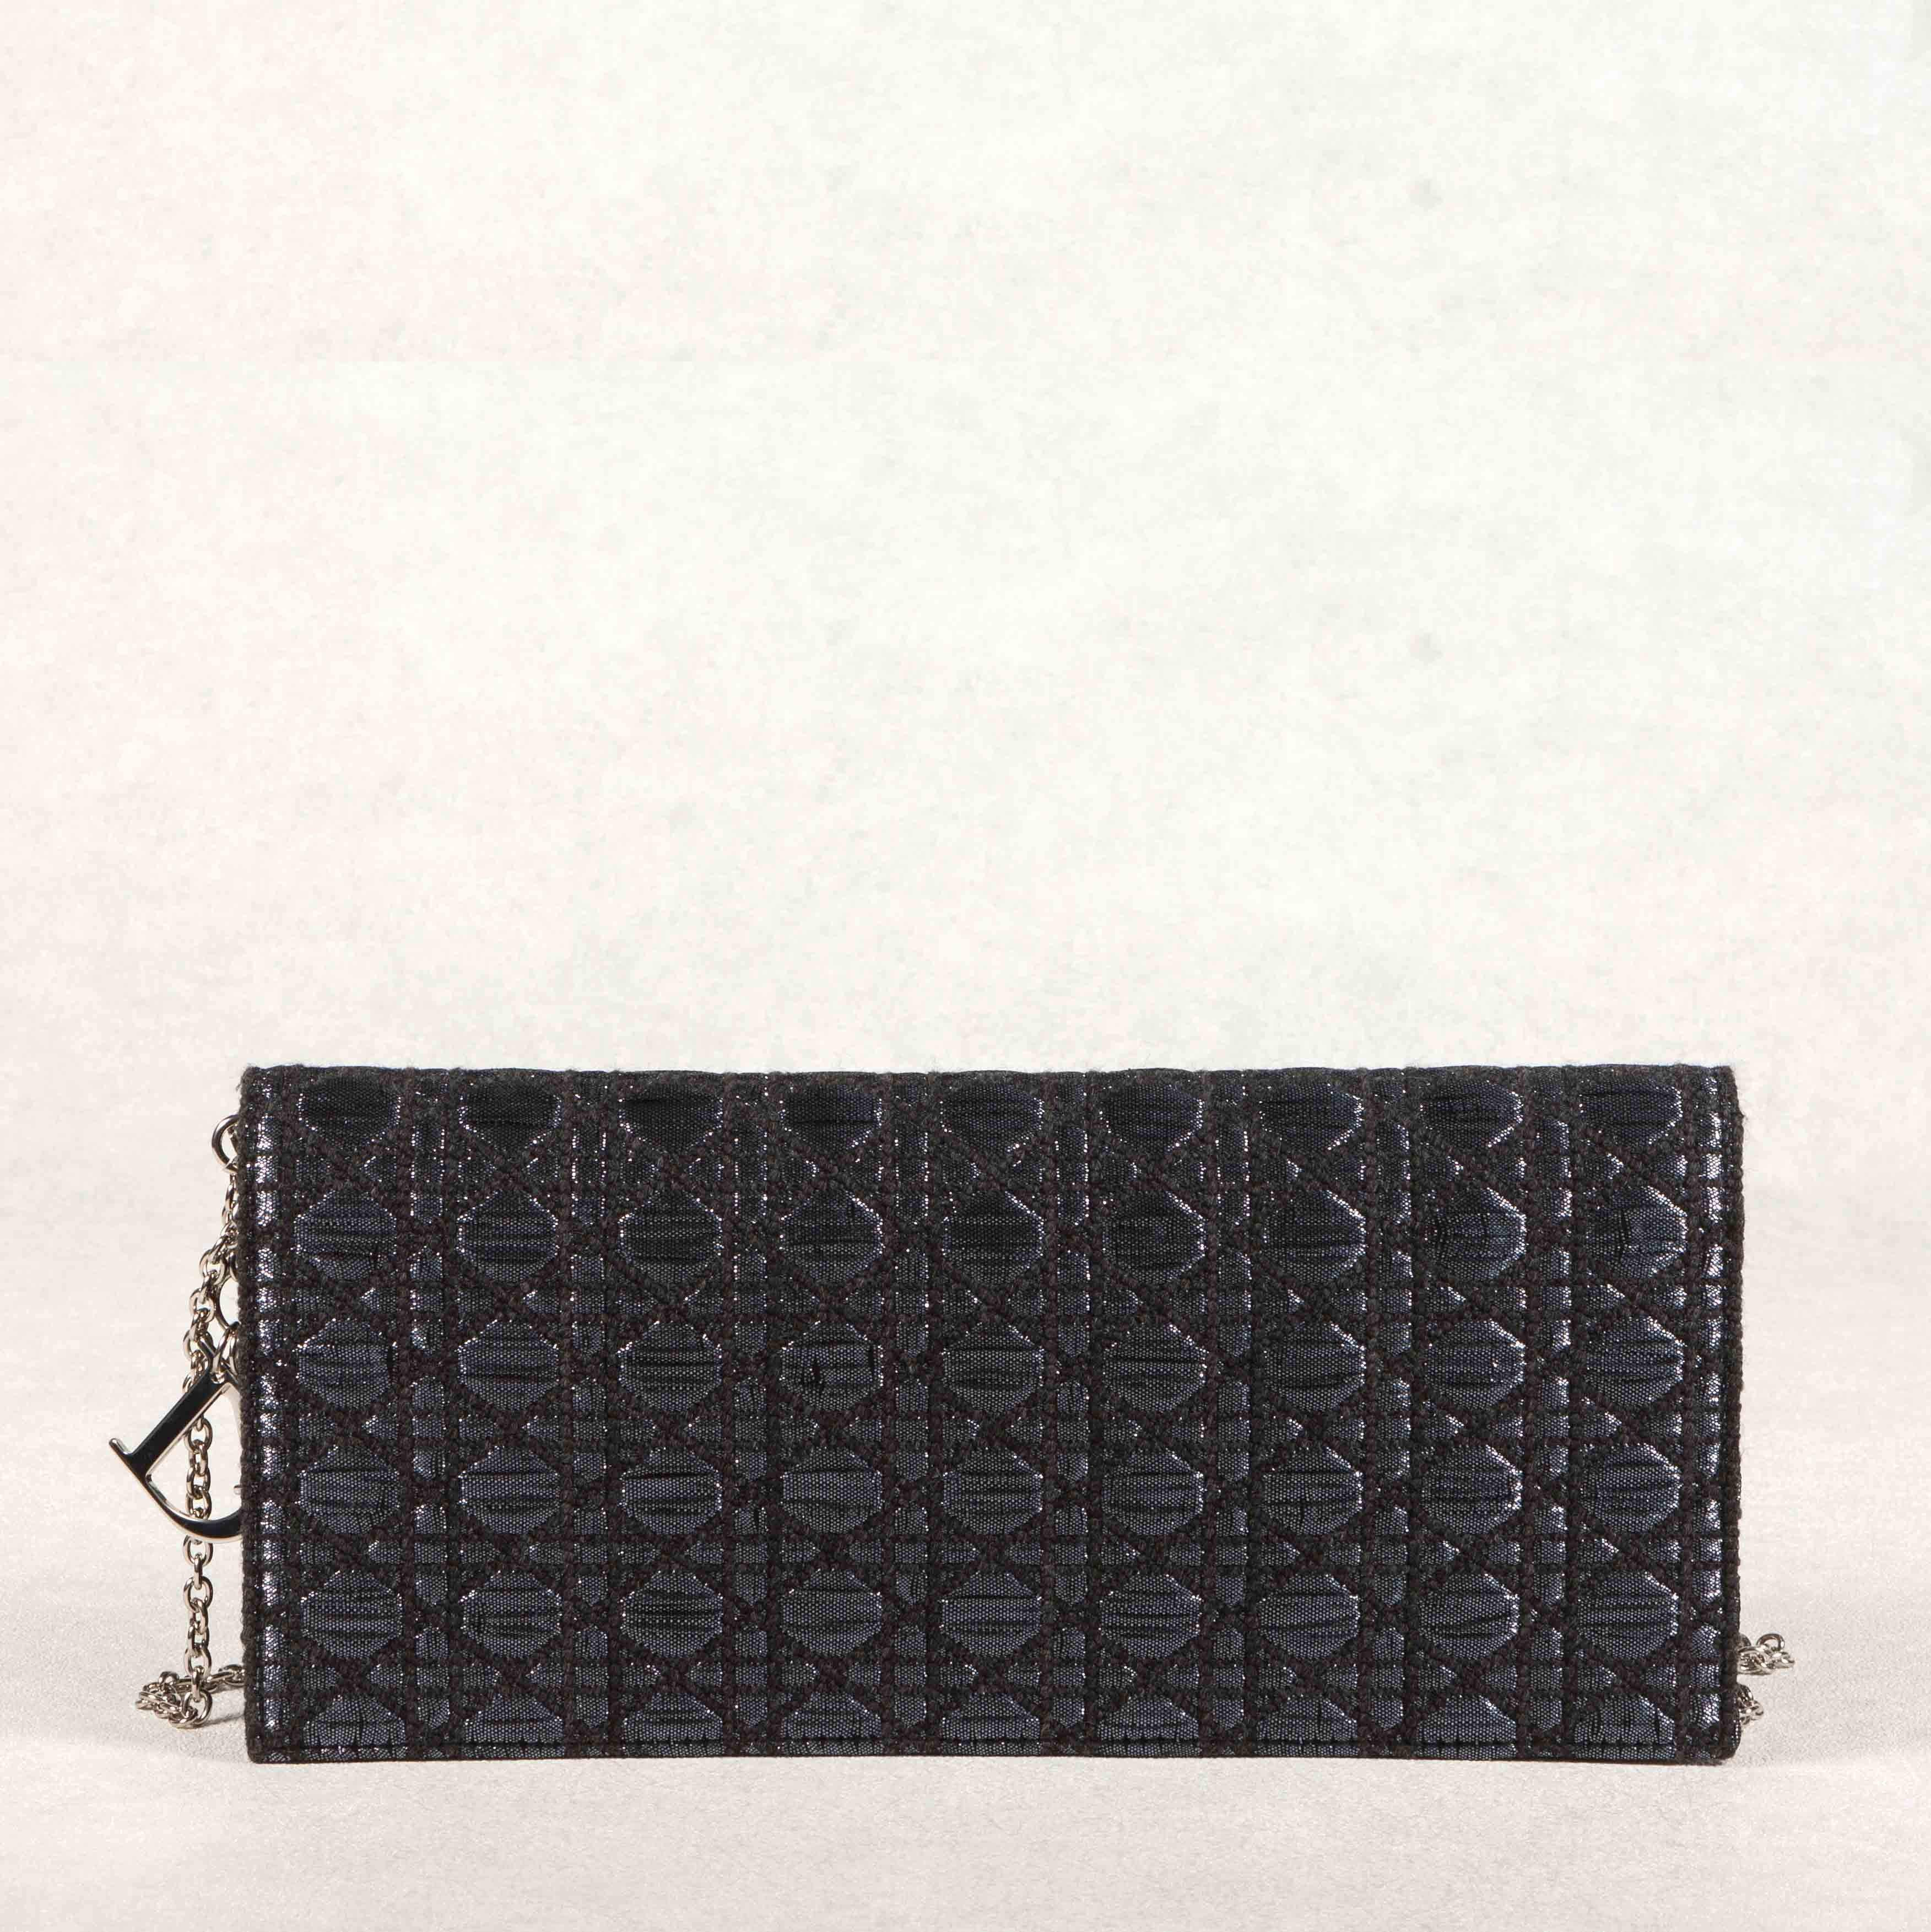 Dior Tweed and Metallic Cannage Stitched Fabric Clutch